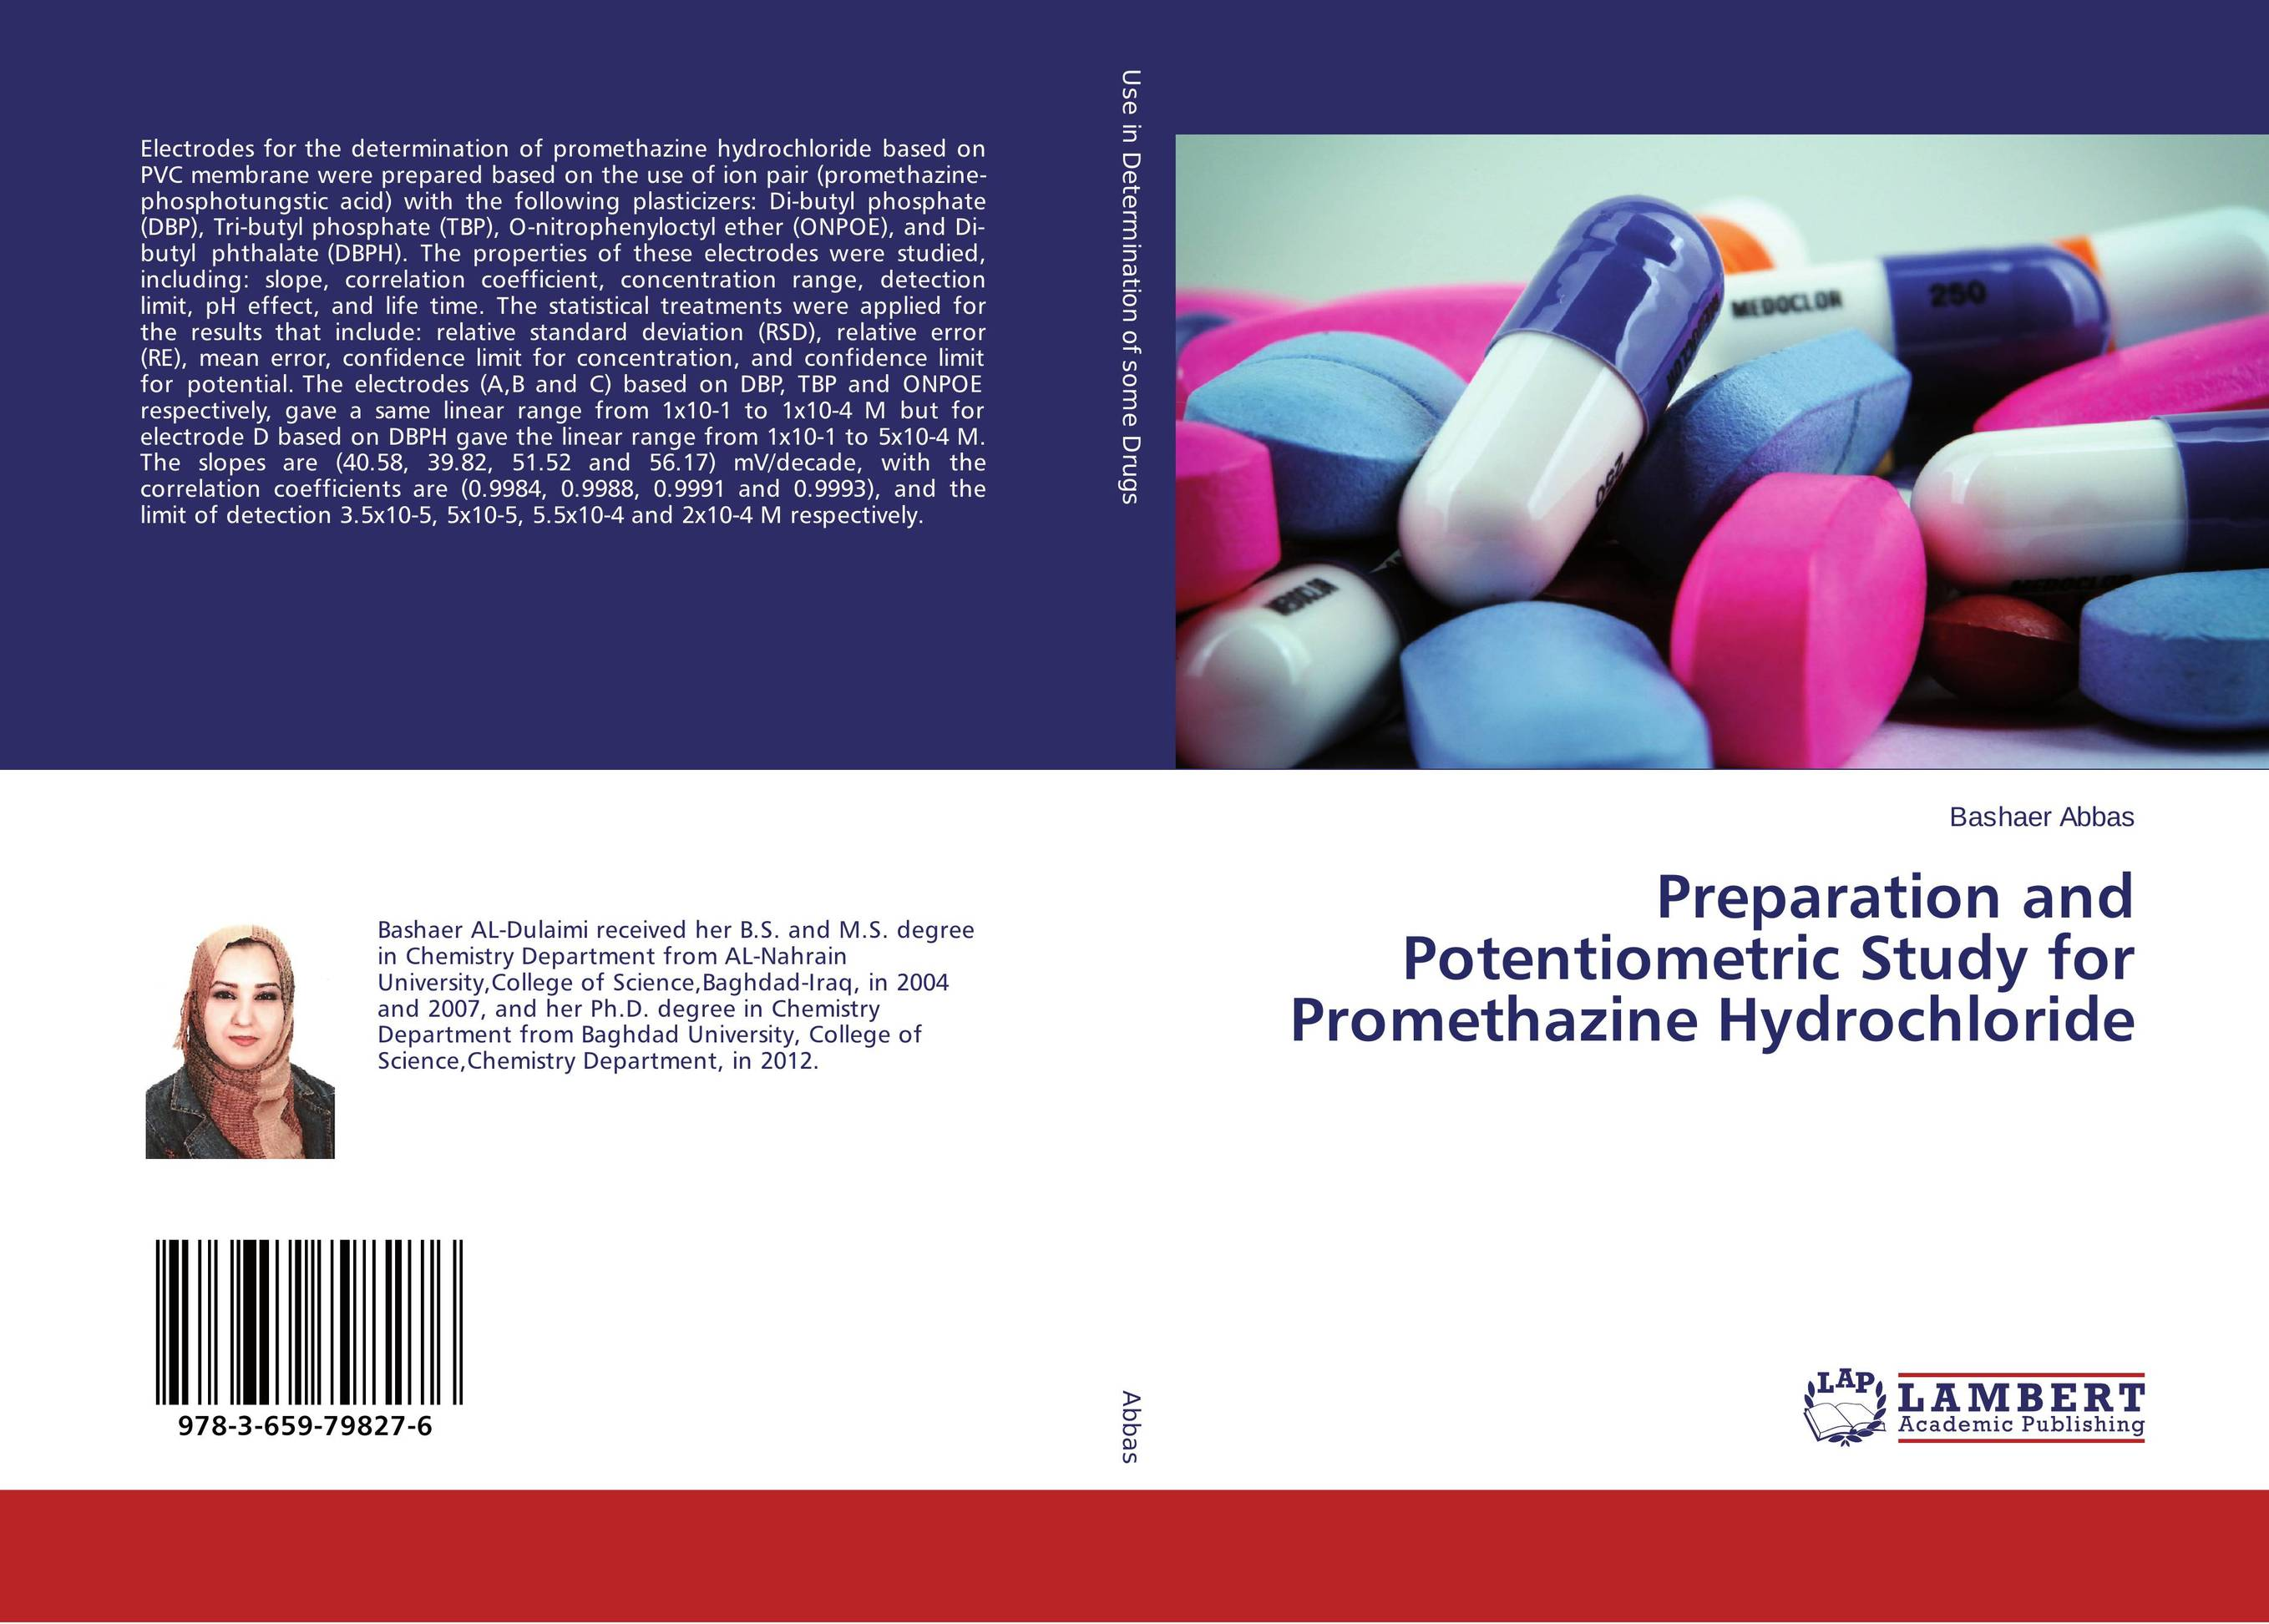 Preparation and Potentiometric Study for Promethazine Hydrochloride